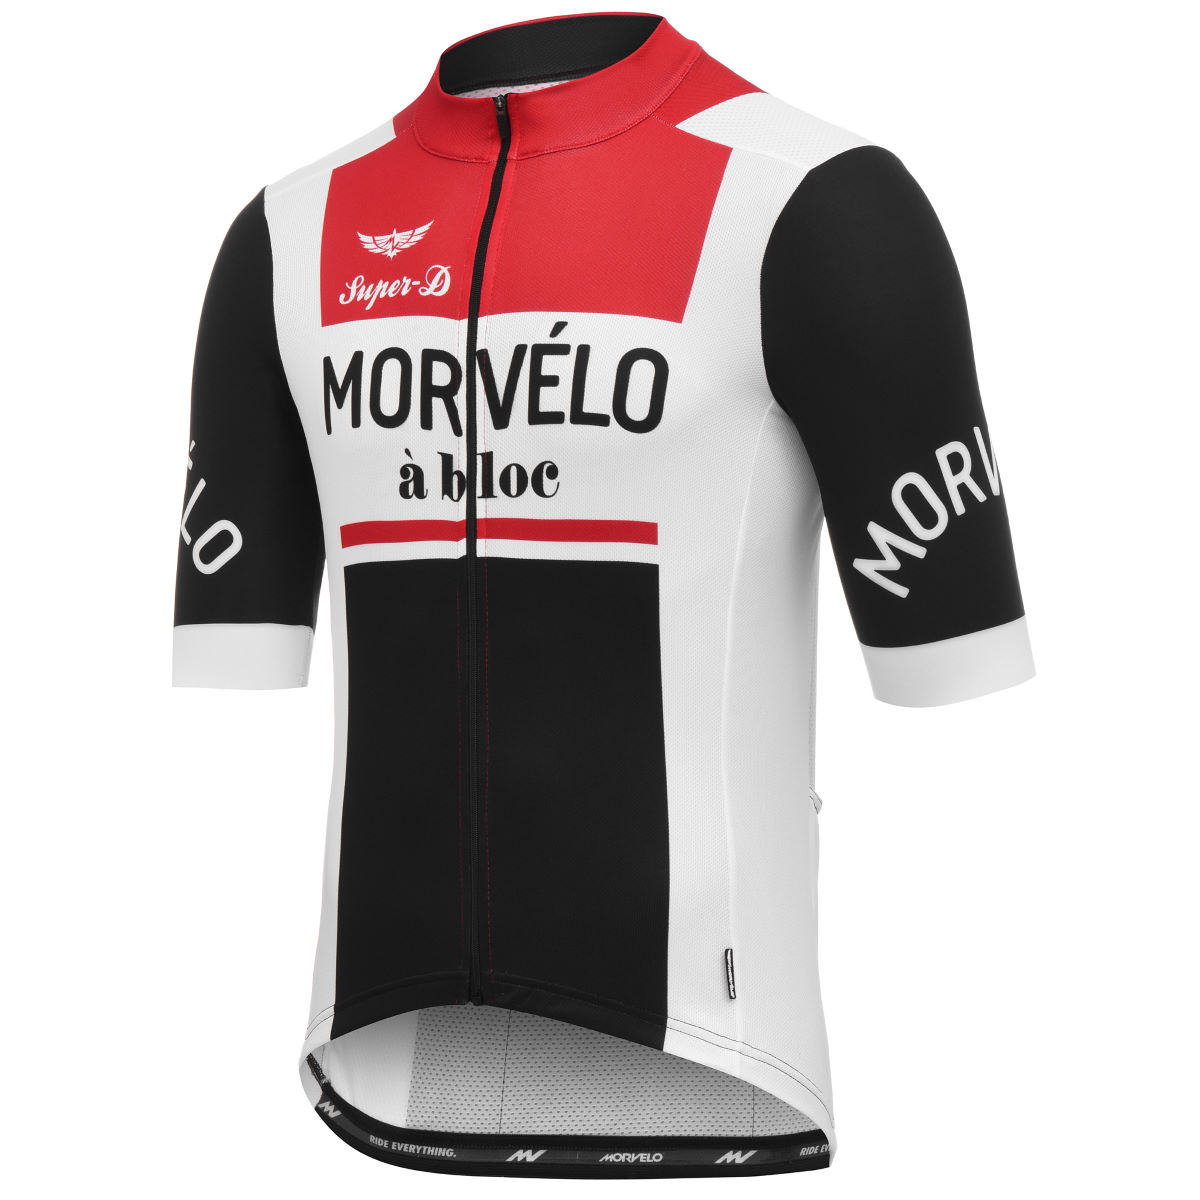 Maillot Morvelo 10 Year Celebration A bloc - XL Blanc/Noir/Rouge